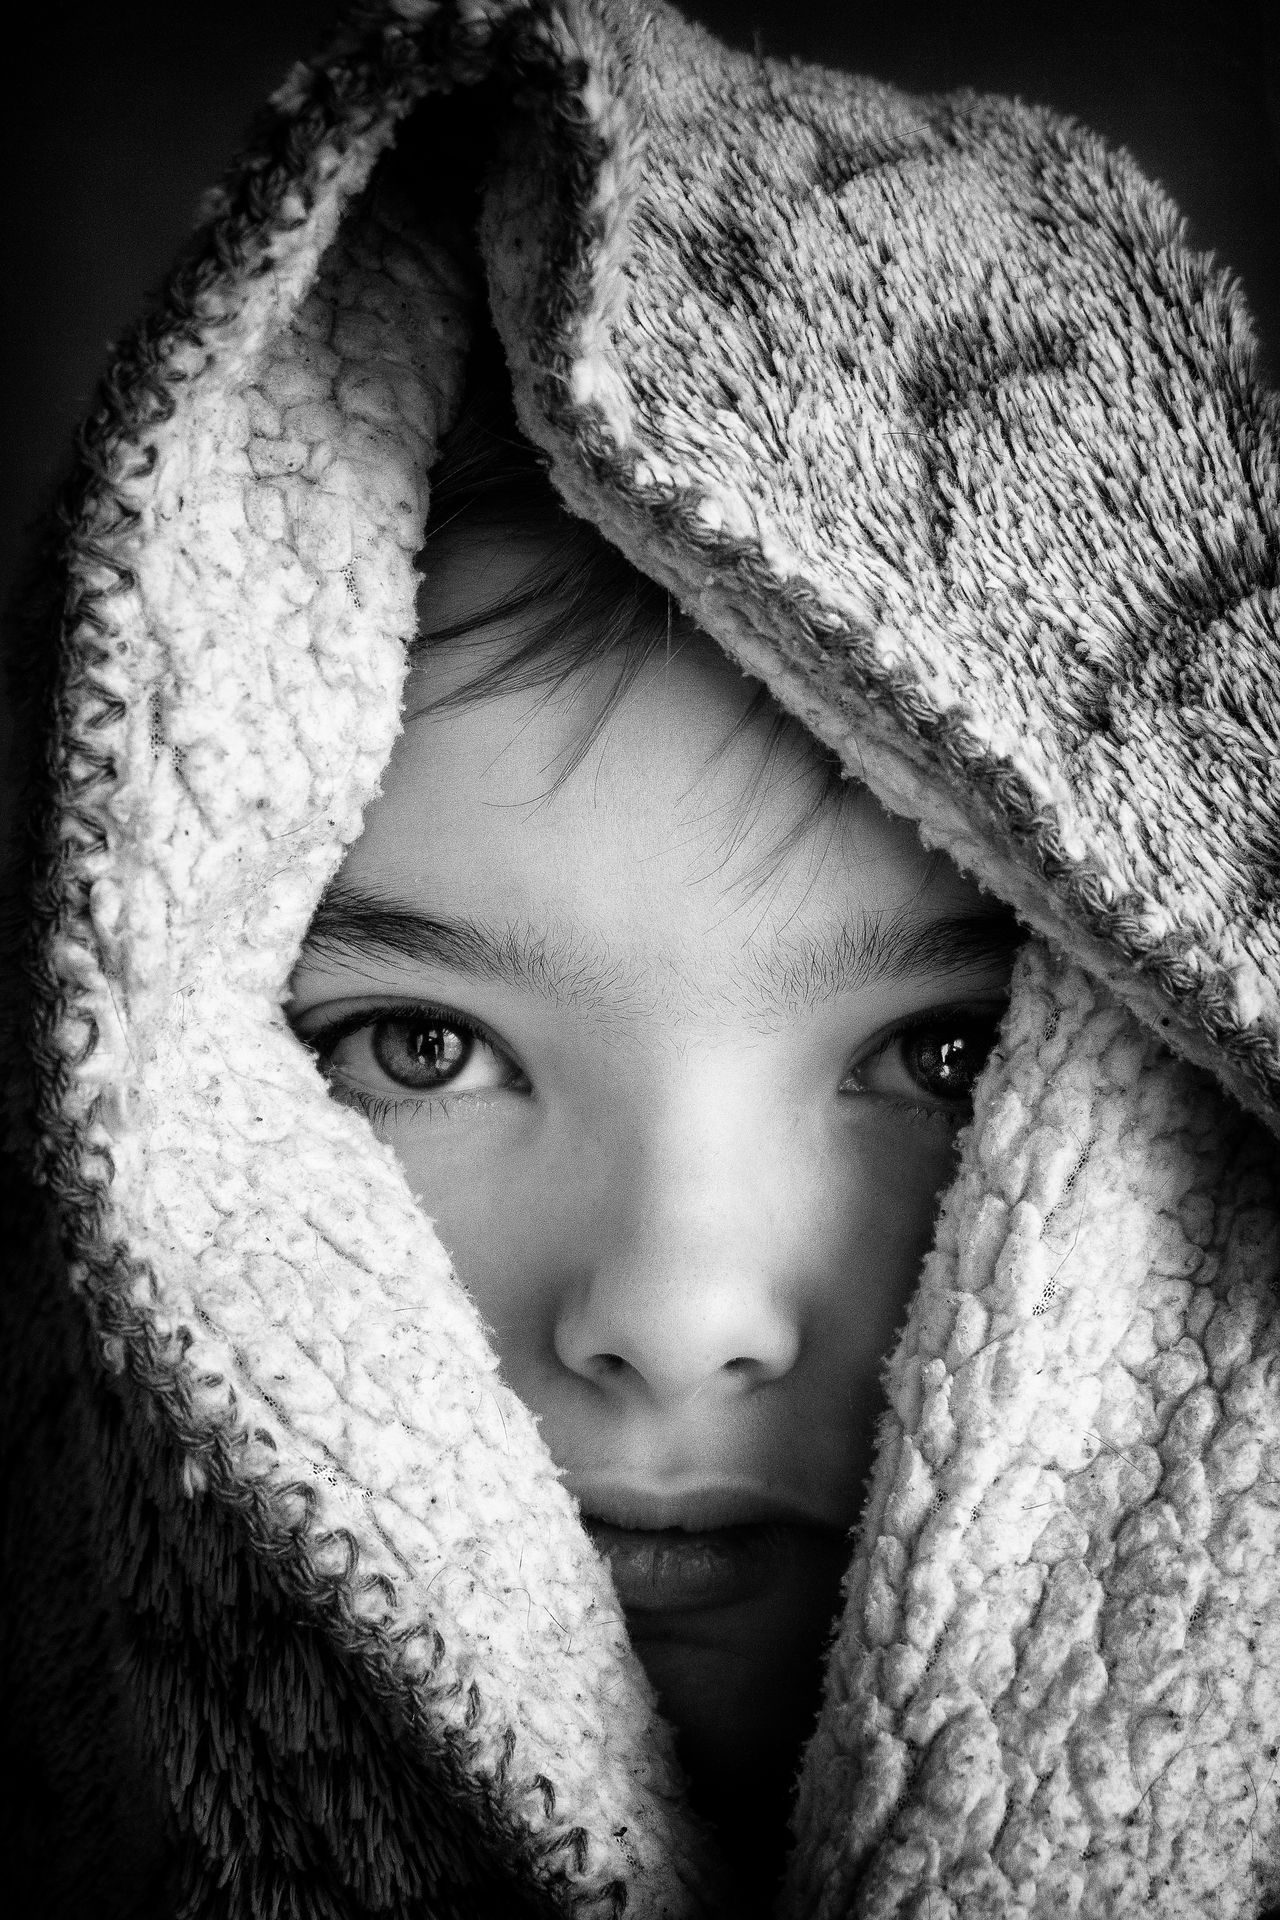 Anakin sous cape (ré-édit) #chidren Close-up Cold Temperature Headshot Human Face Indoors  Lifestyles Looking At Camera One Person Portrait Real People Scarf Warm Clothing Young Adult